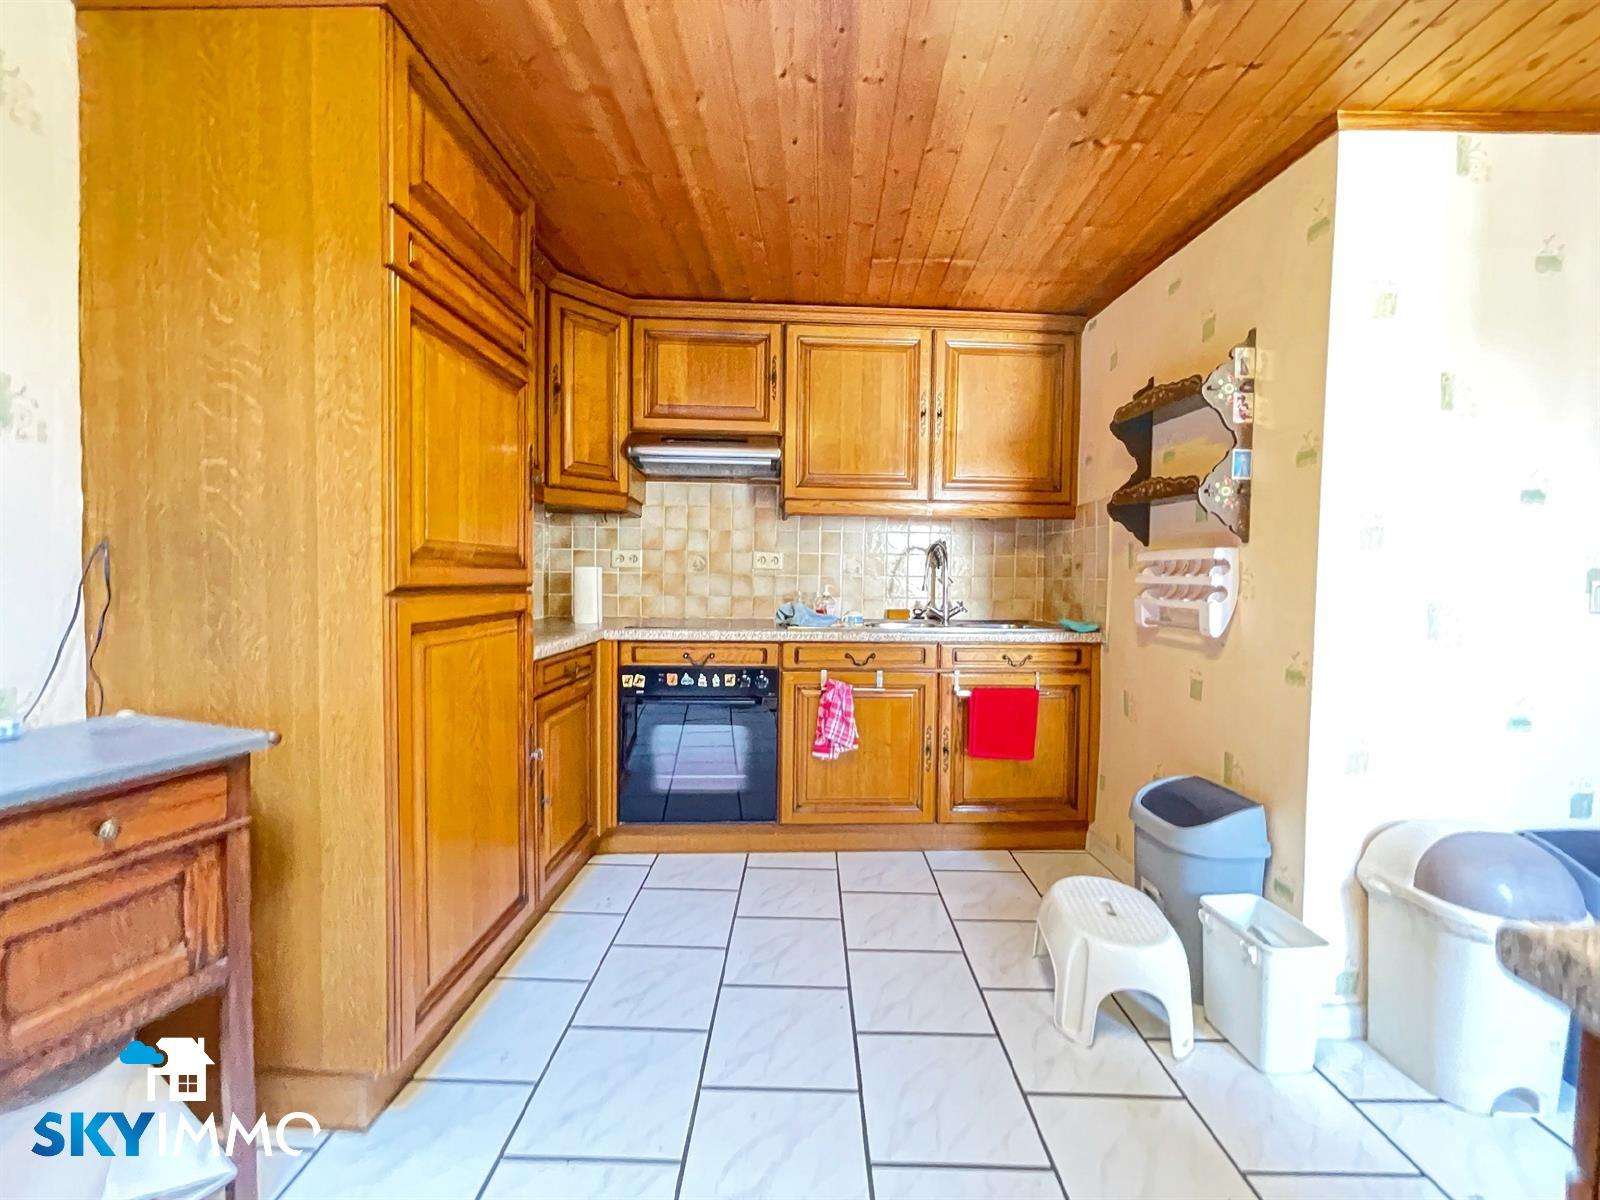 Huis - Flemalle - #4394734-8